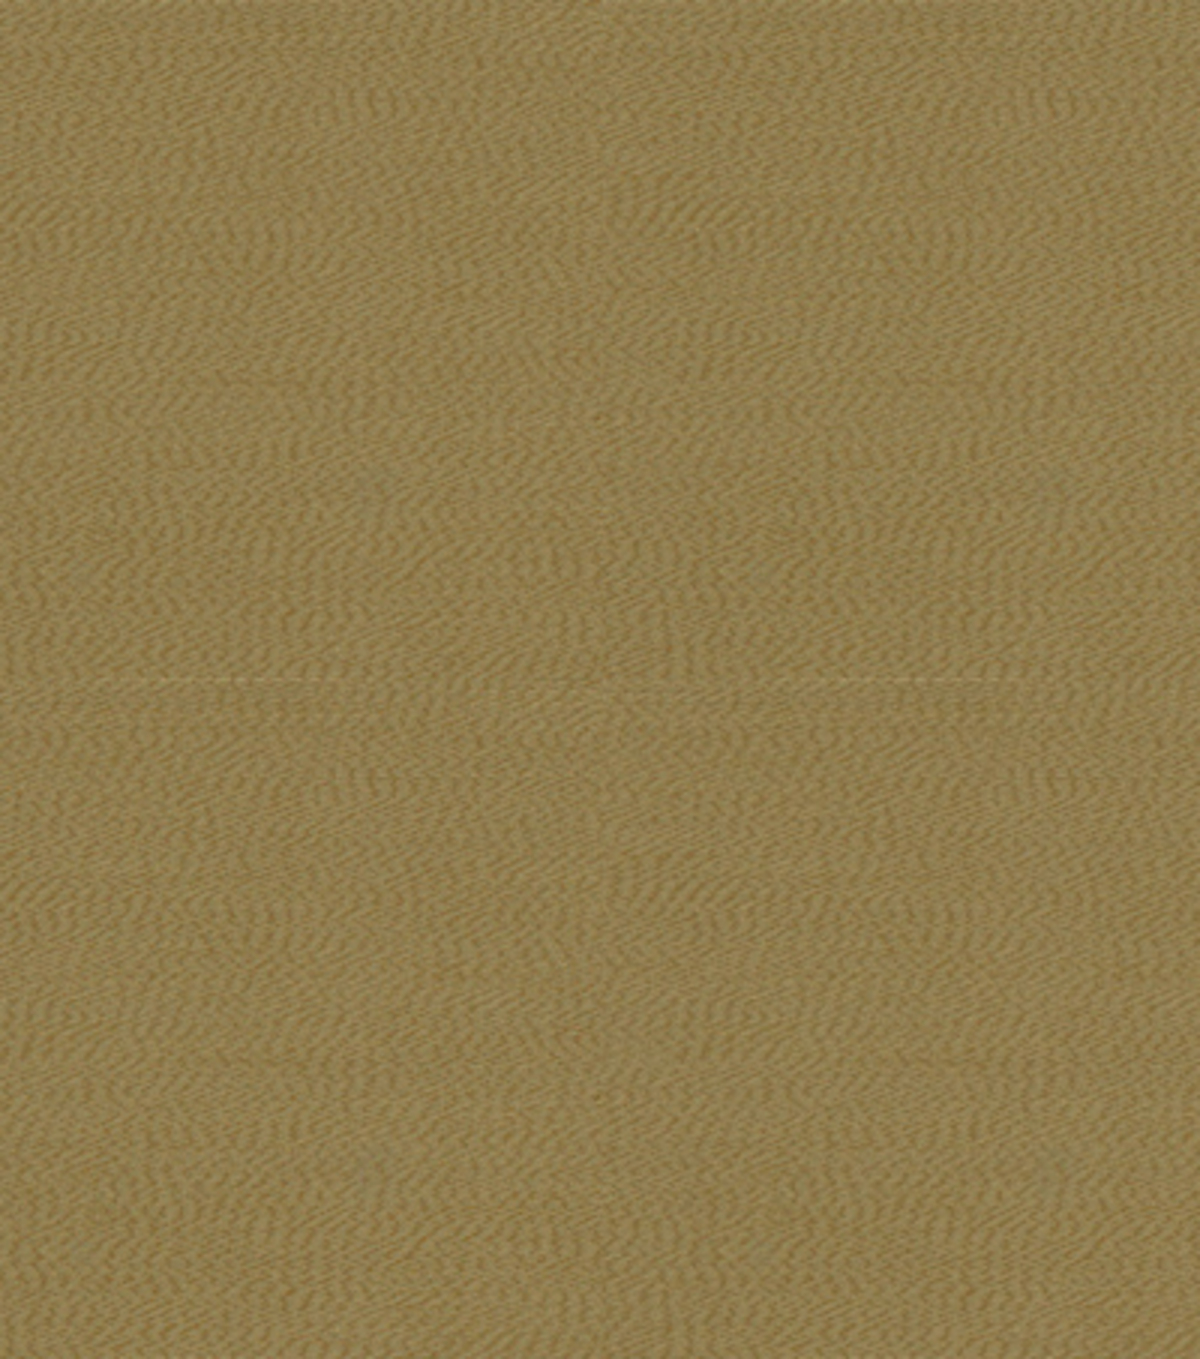 Home Decor 8\u0022x8\u0022 Fabric Swatch-HGTV HOME Polarized Topaz